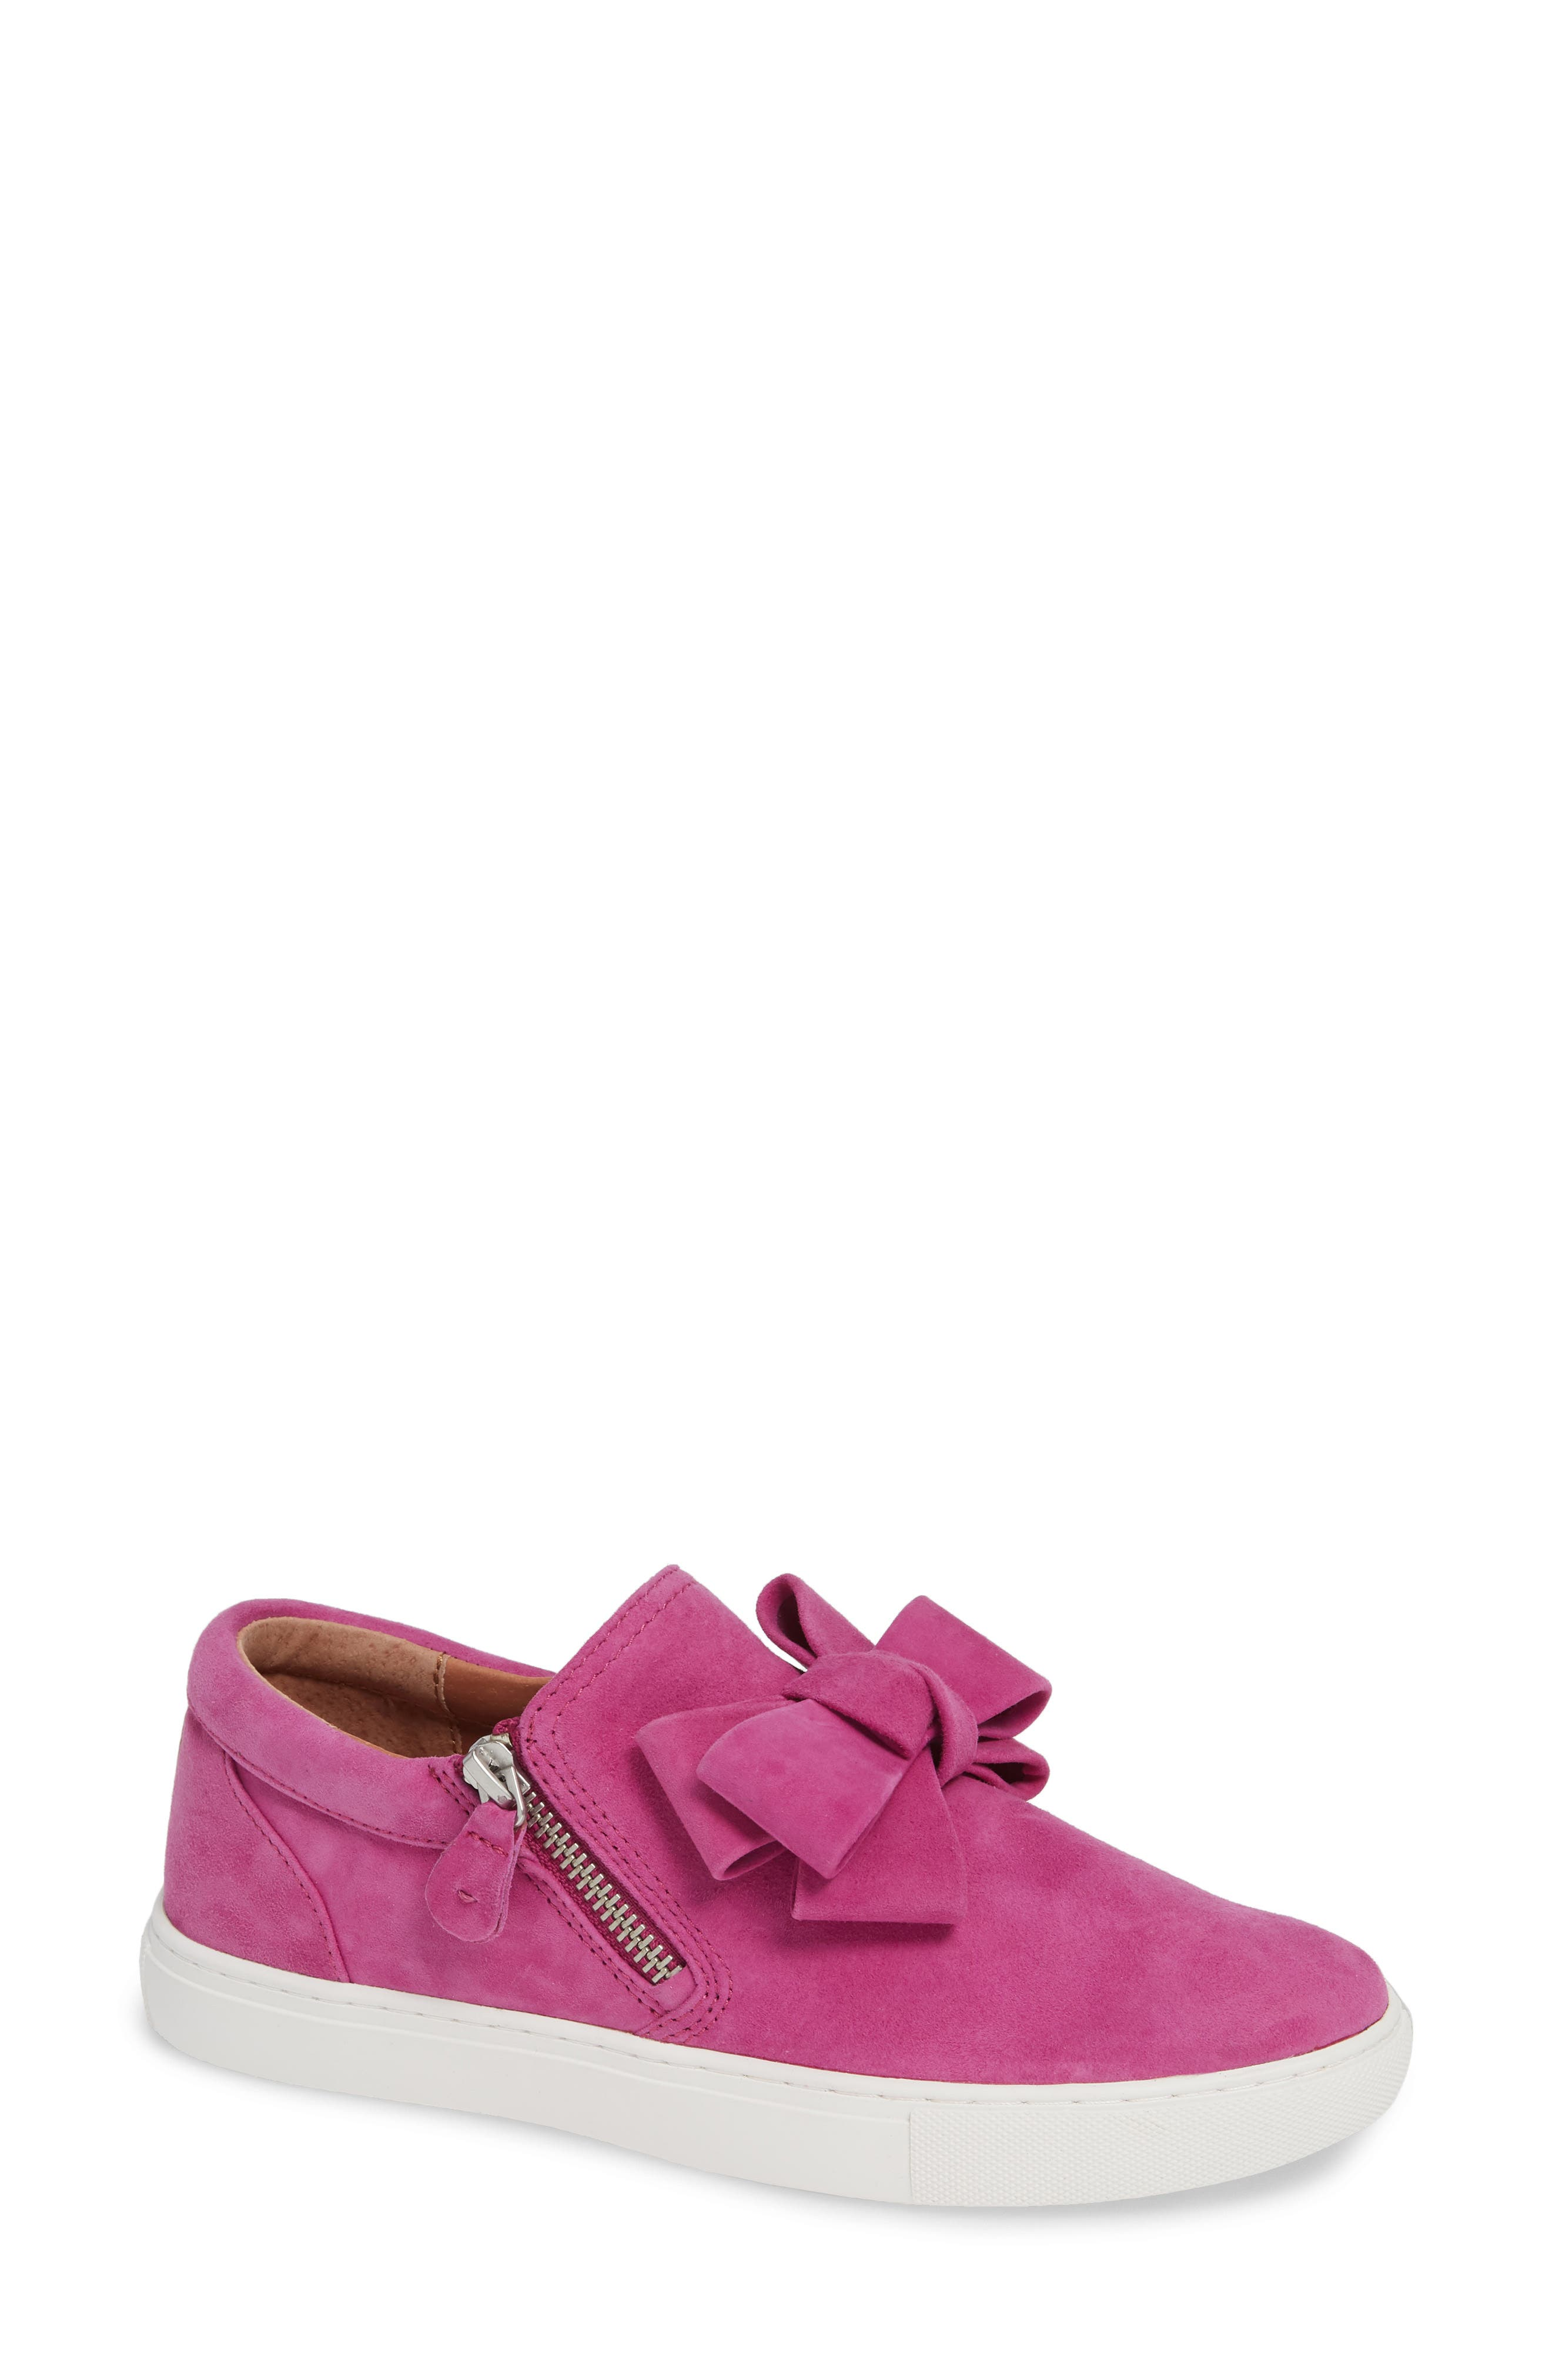 By Kenneth Cole Lowe Bow Sneaker in Magenta Suede